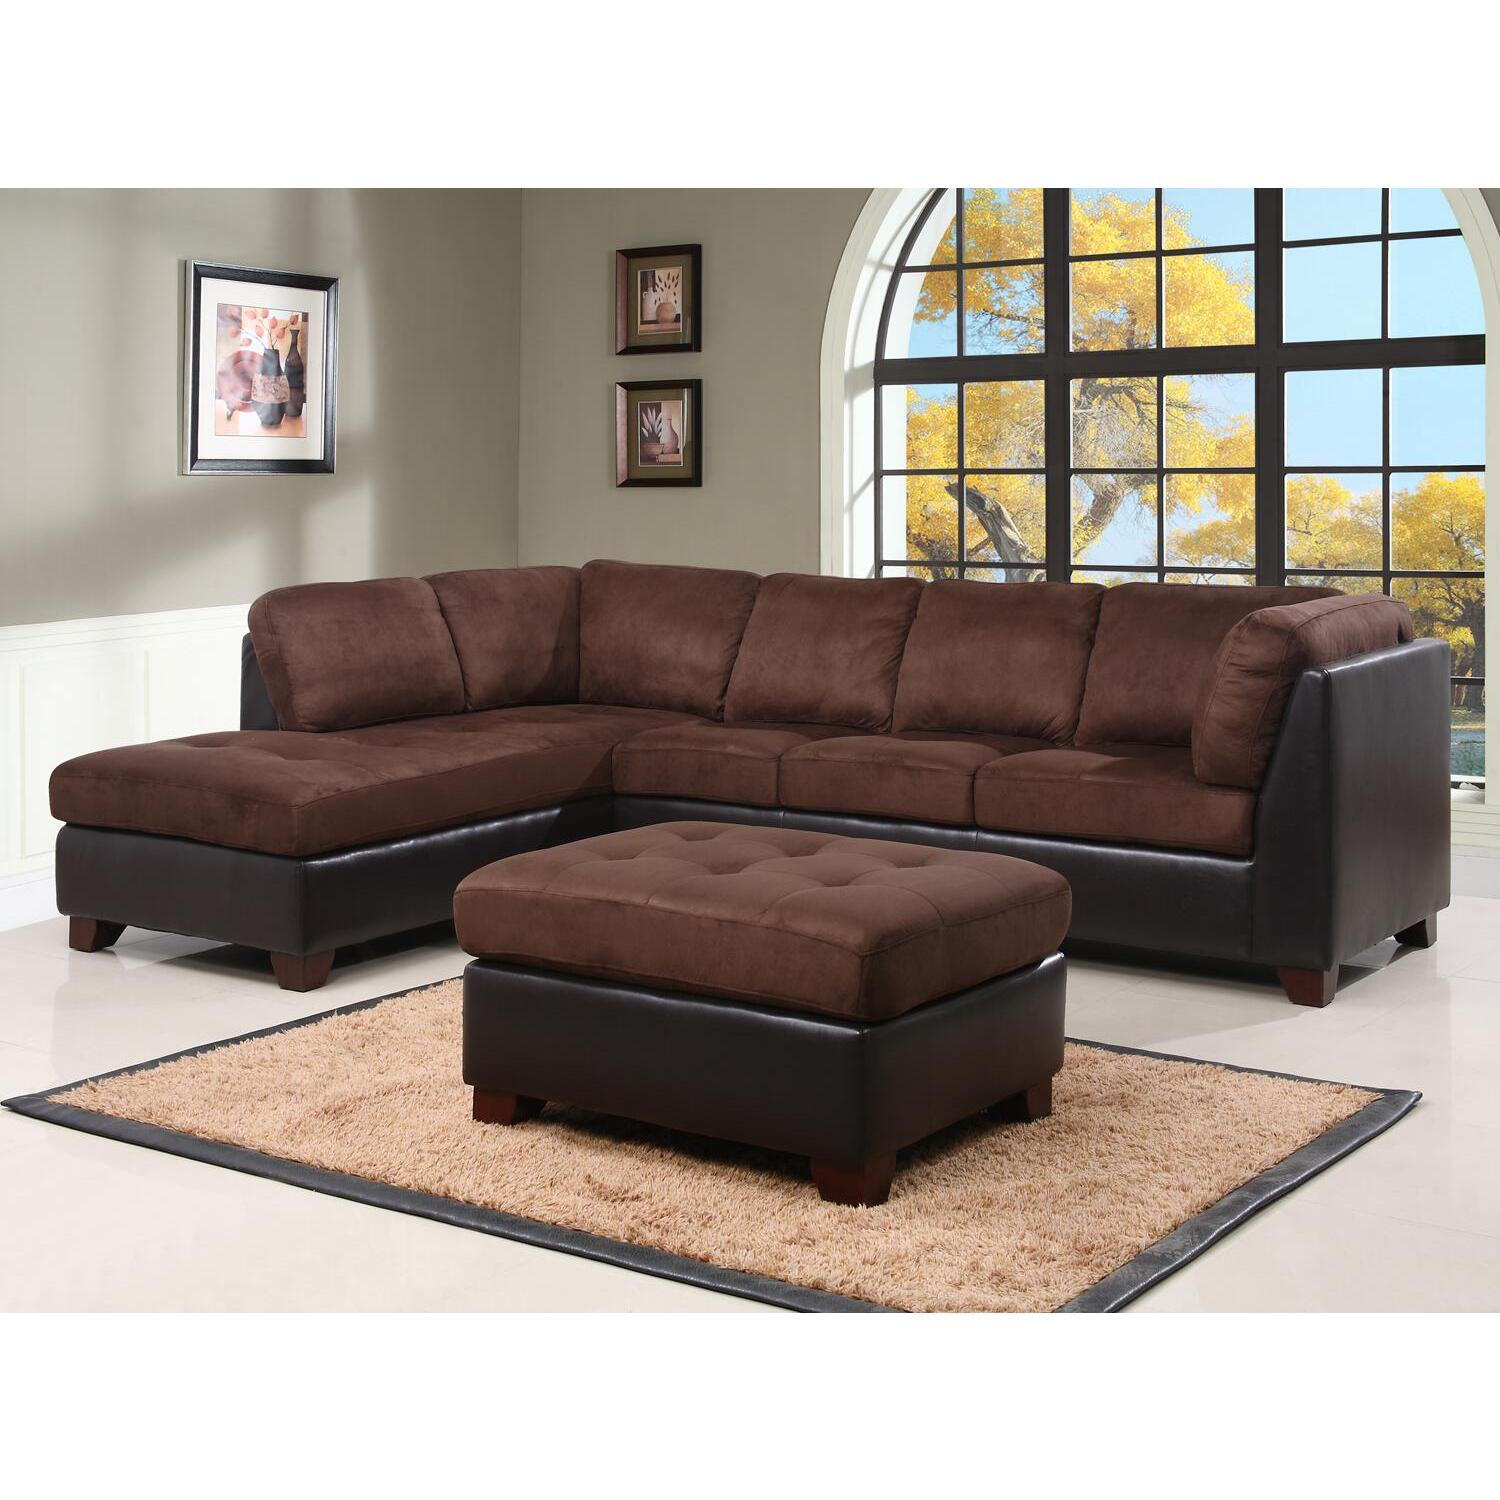 large sectional sofa with ottoman martha stewart pillows abbyson living and by oj commerce